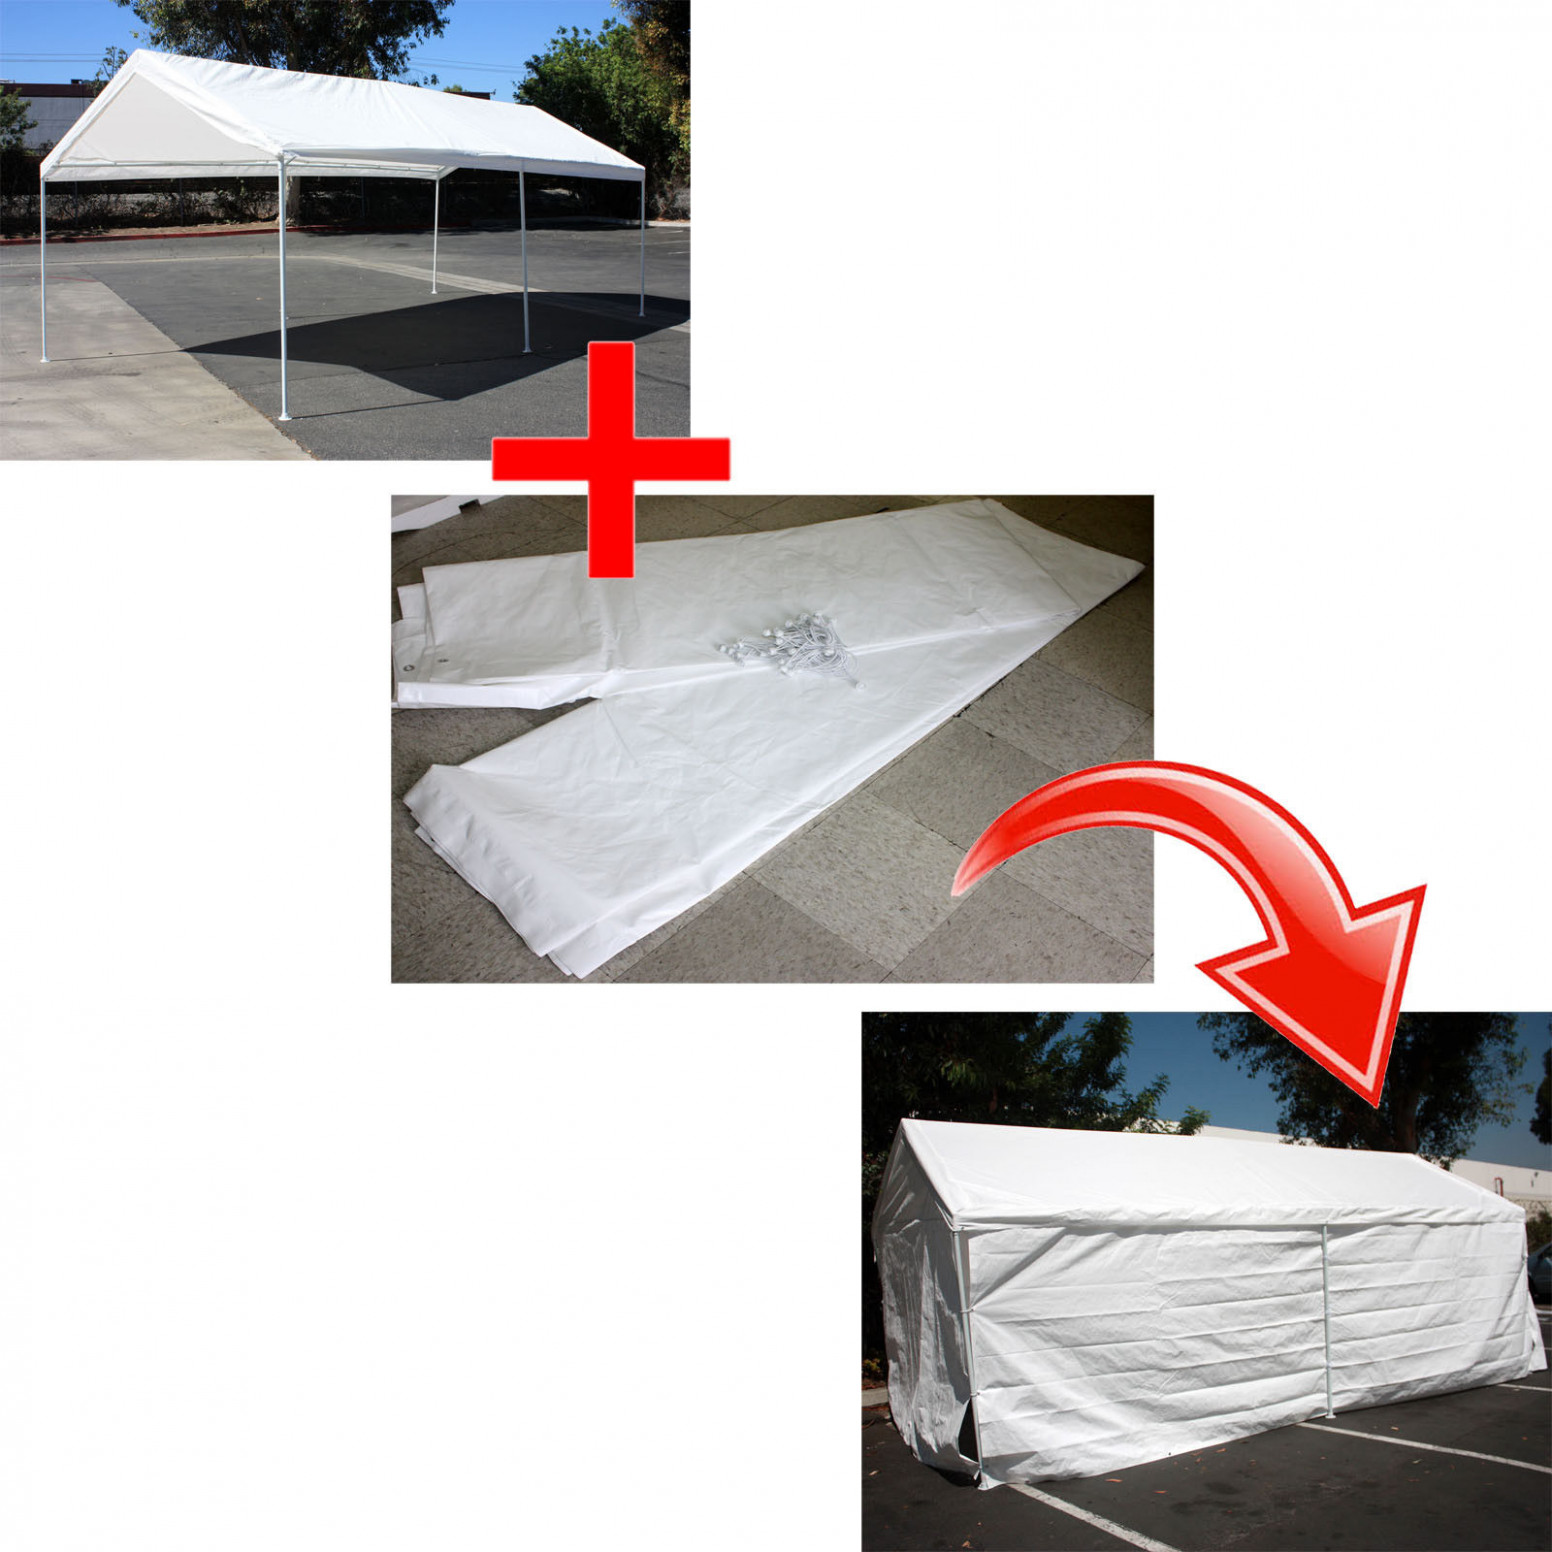 Add On Canopy Garage Side Wall Kit 7 7'x7' Tent Parking Carport Party Shelter Carport Tent Kits